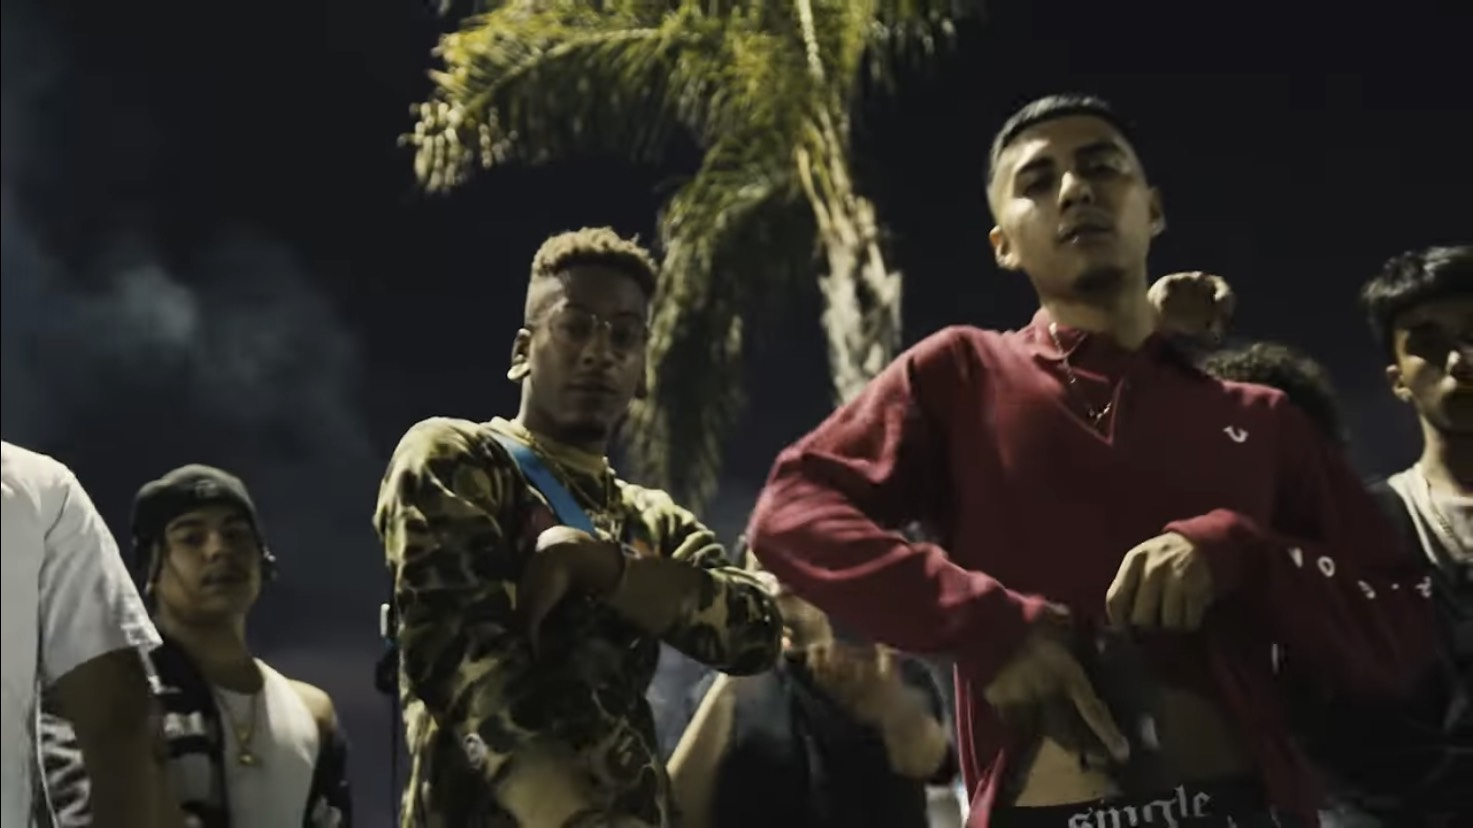 MoneySign $uede & AzChike Are 'Geeked Up' In